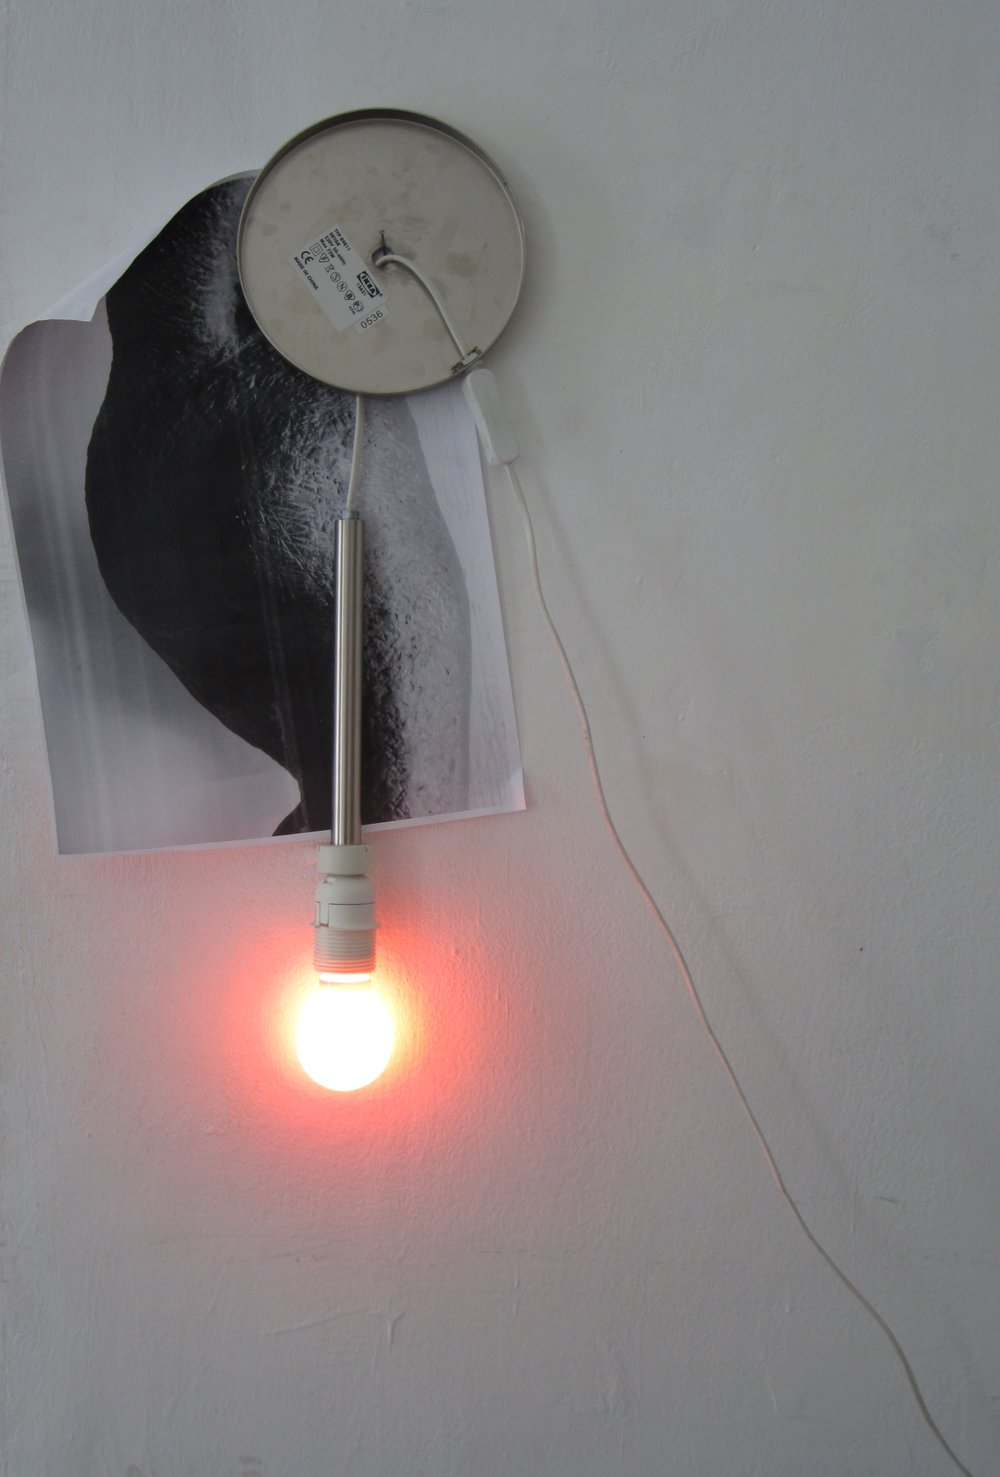 Member of The Family    – A4 black and white digital print of a Dora Gordine sculpture, unscrewed Ikea lamp and amber light bulb, on a nail, Labor Gallery, Budapest, 2015